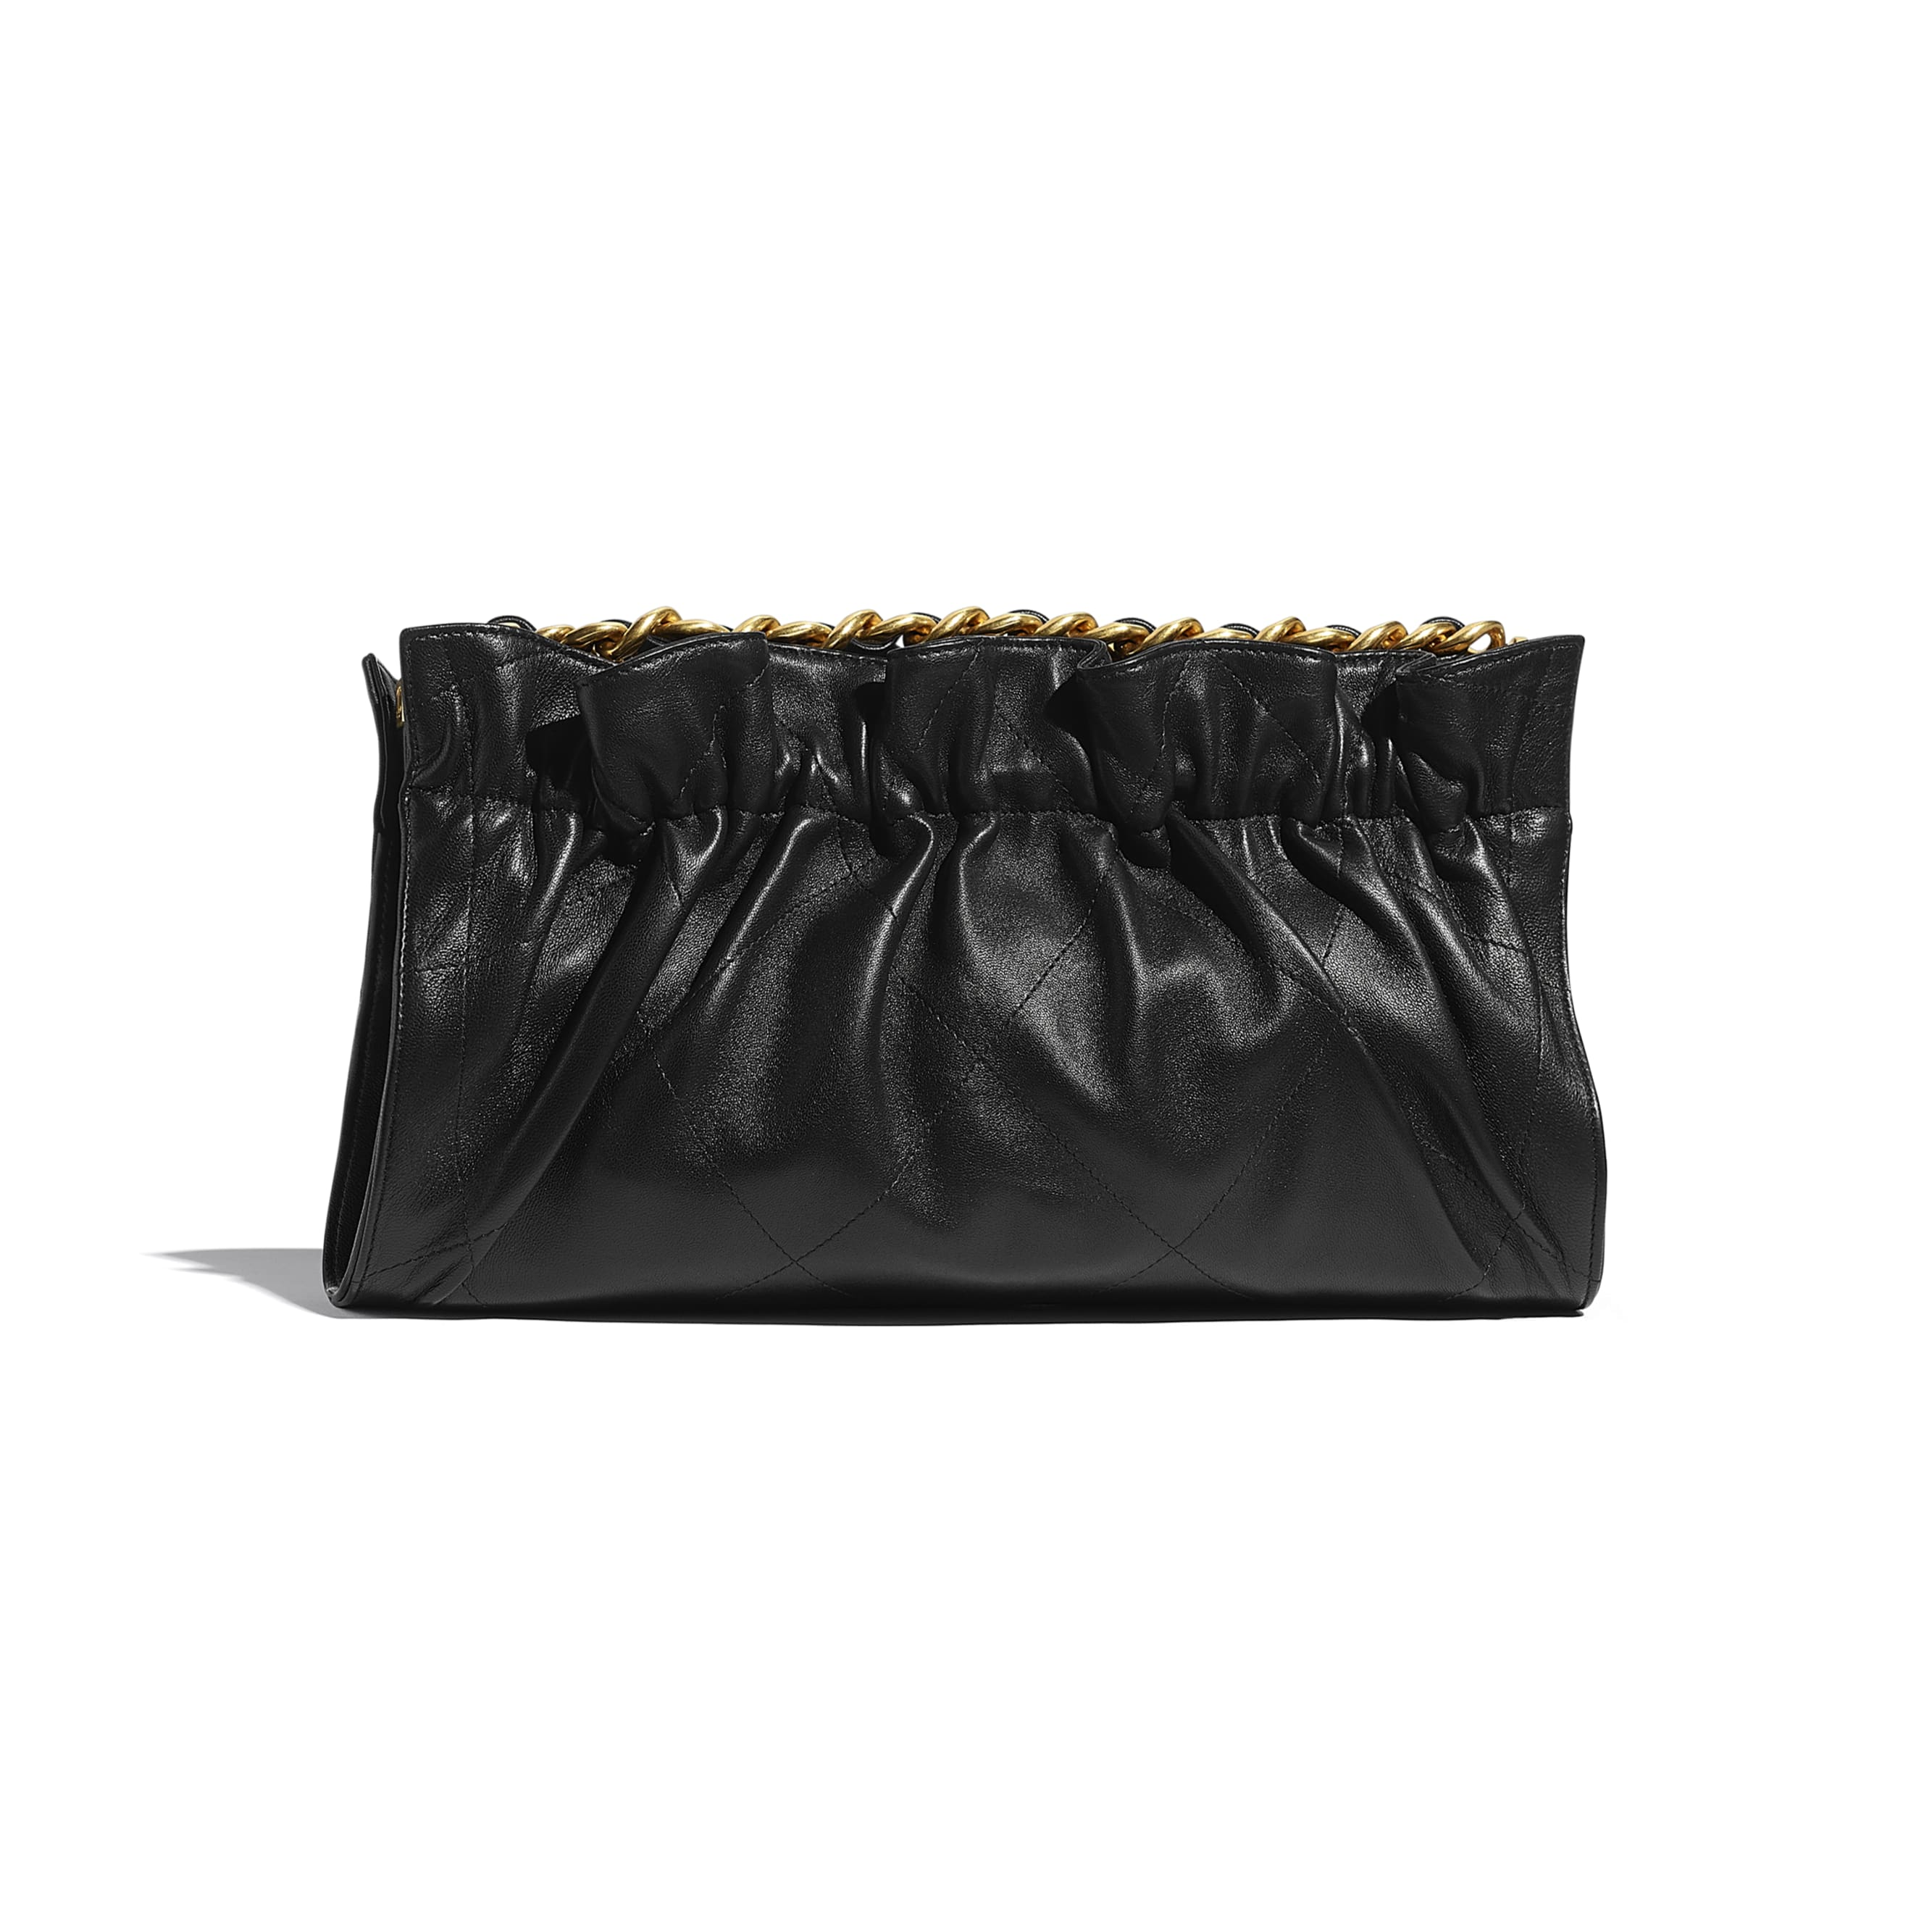 Clutch - Black - Lambskin - CHANEL - Alternative view - see standard sized version